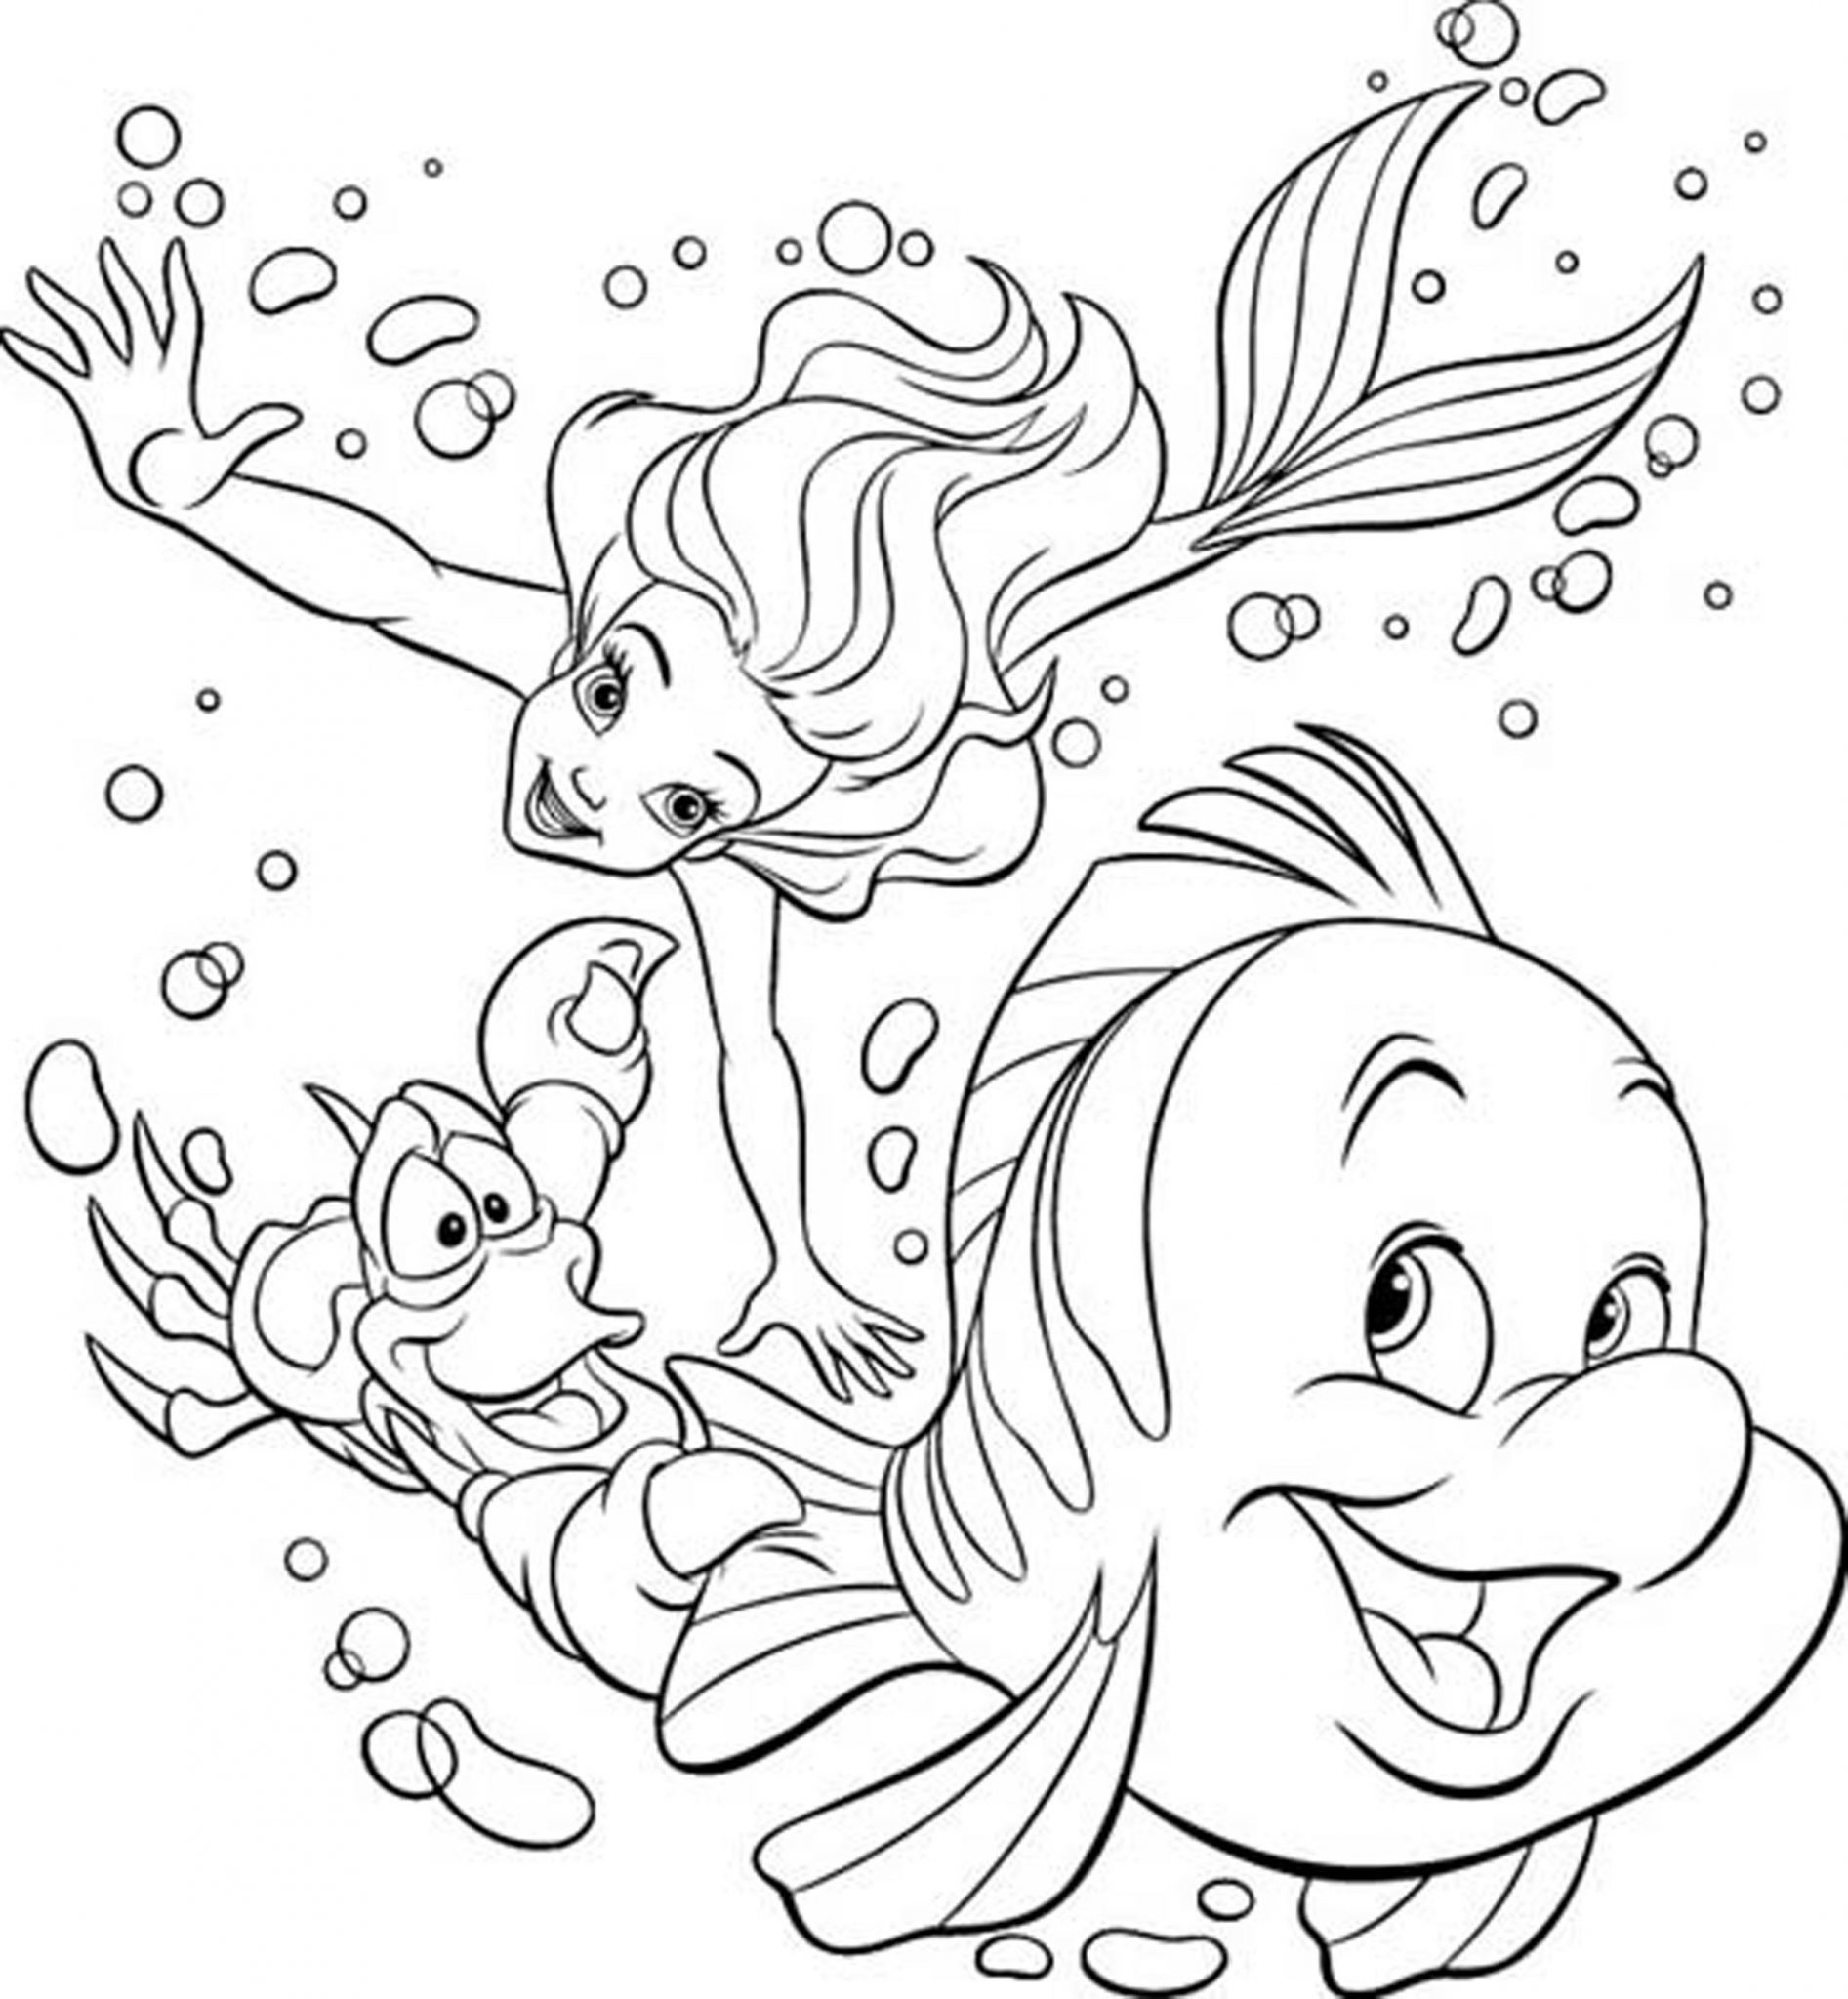 33 Free Disney Coloring Pages for Kids! | BAPS